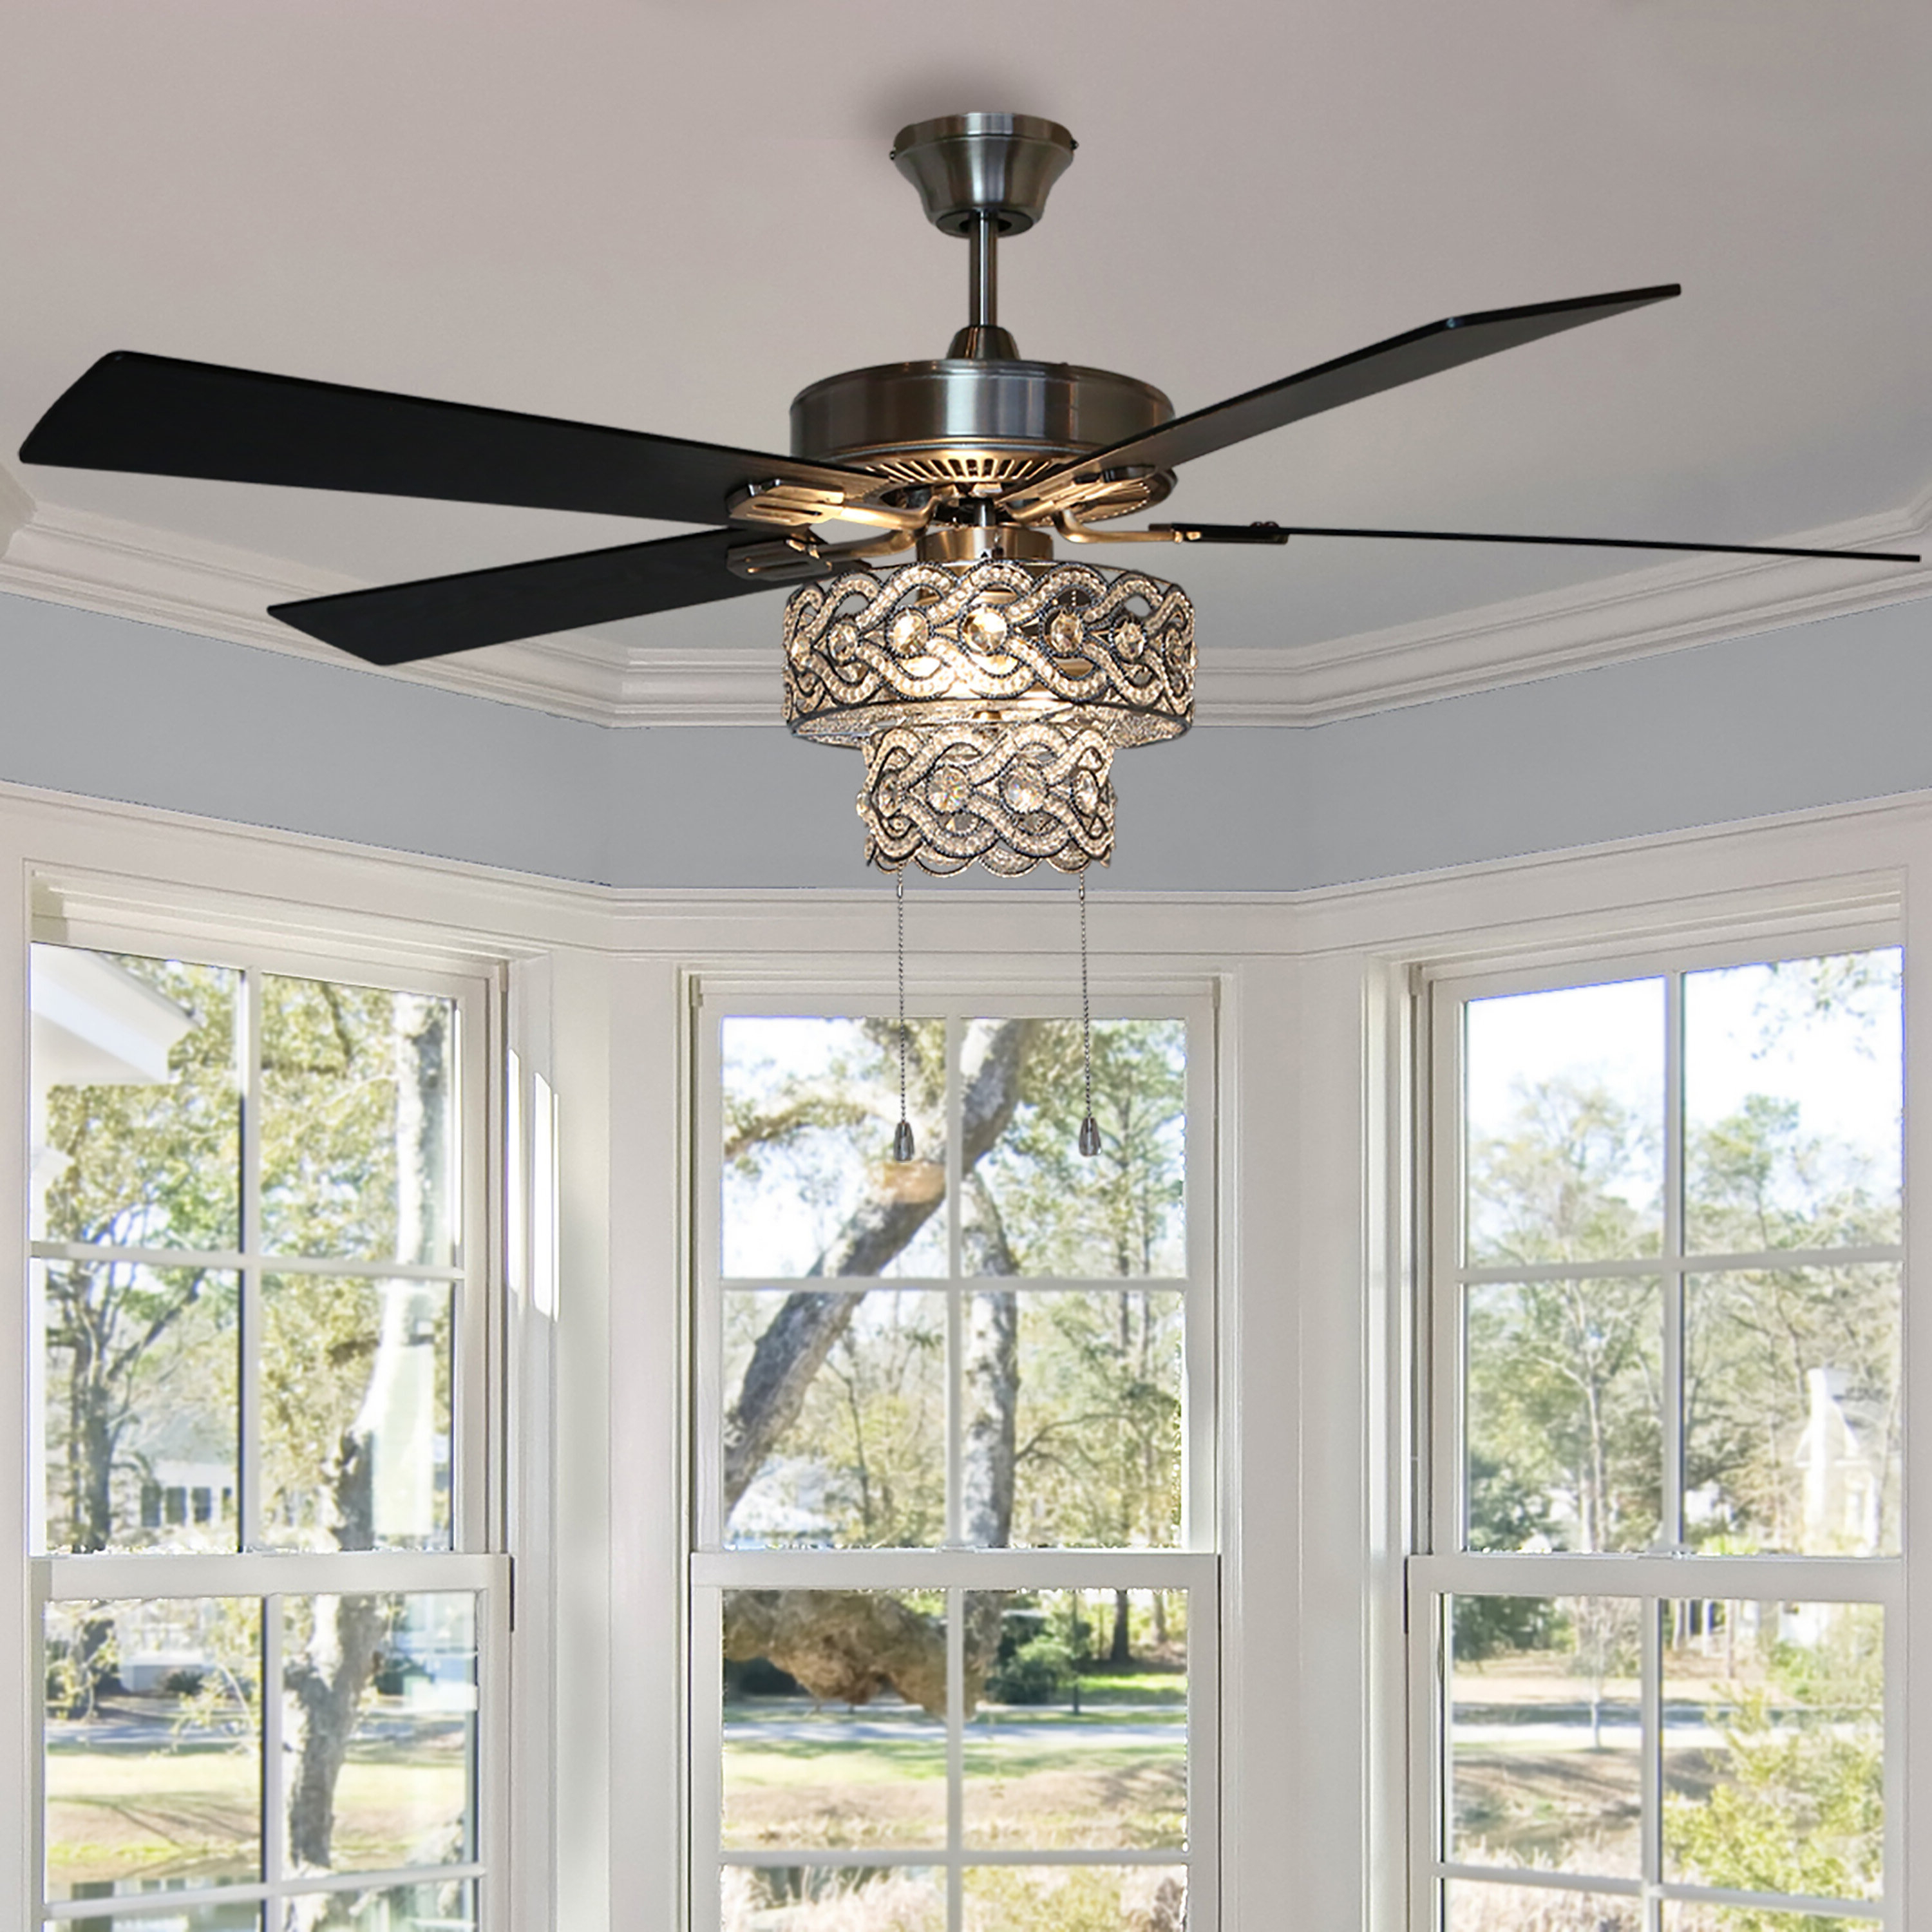 """52"""" Nowthen Beaded Braid 5 Blade Ceiling Fan With Remote, Light Kit Included For Well Liked Njie Caged Crystal 5 Blade Ceiling Fans (View 3 of 20)"""